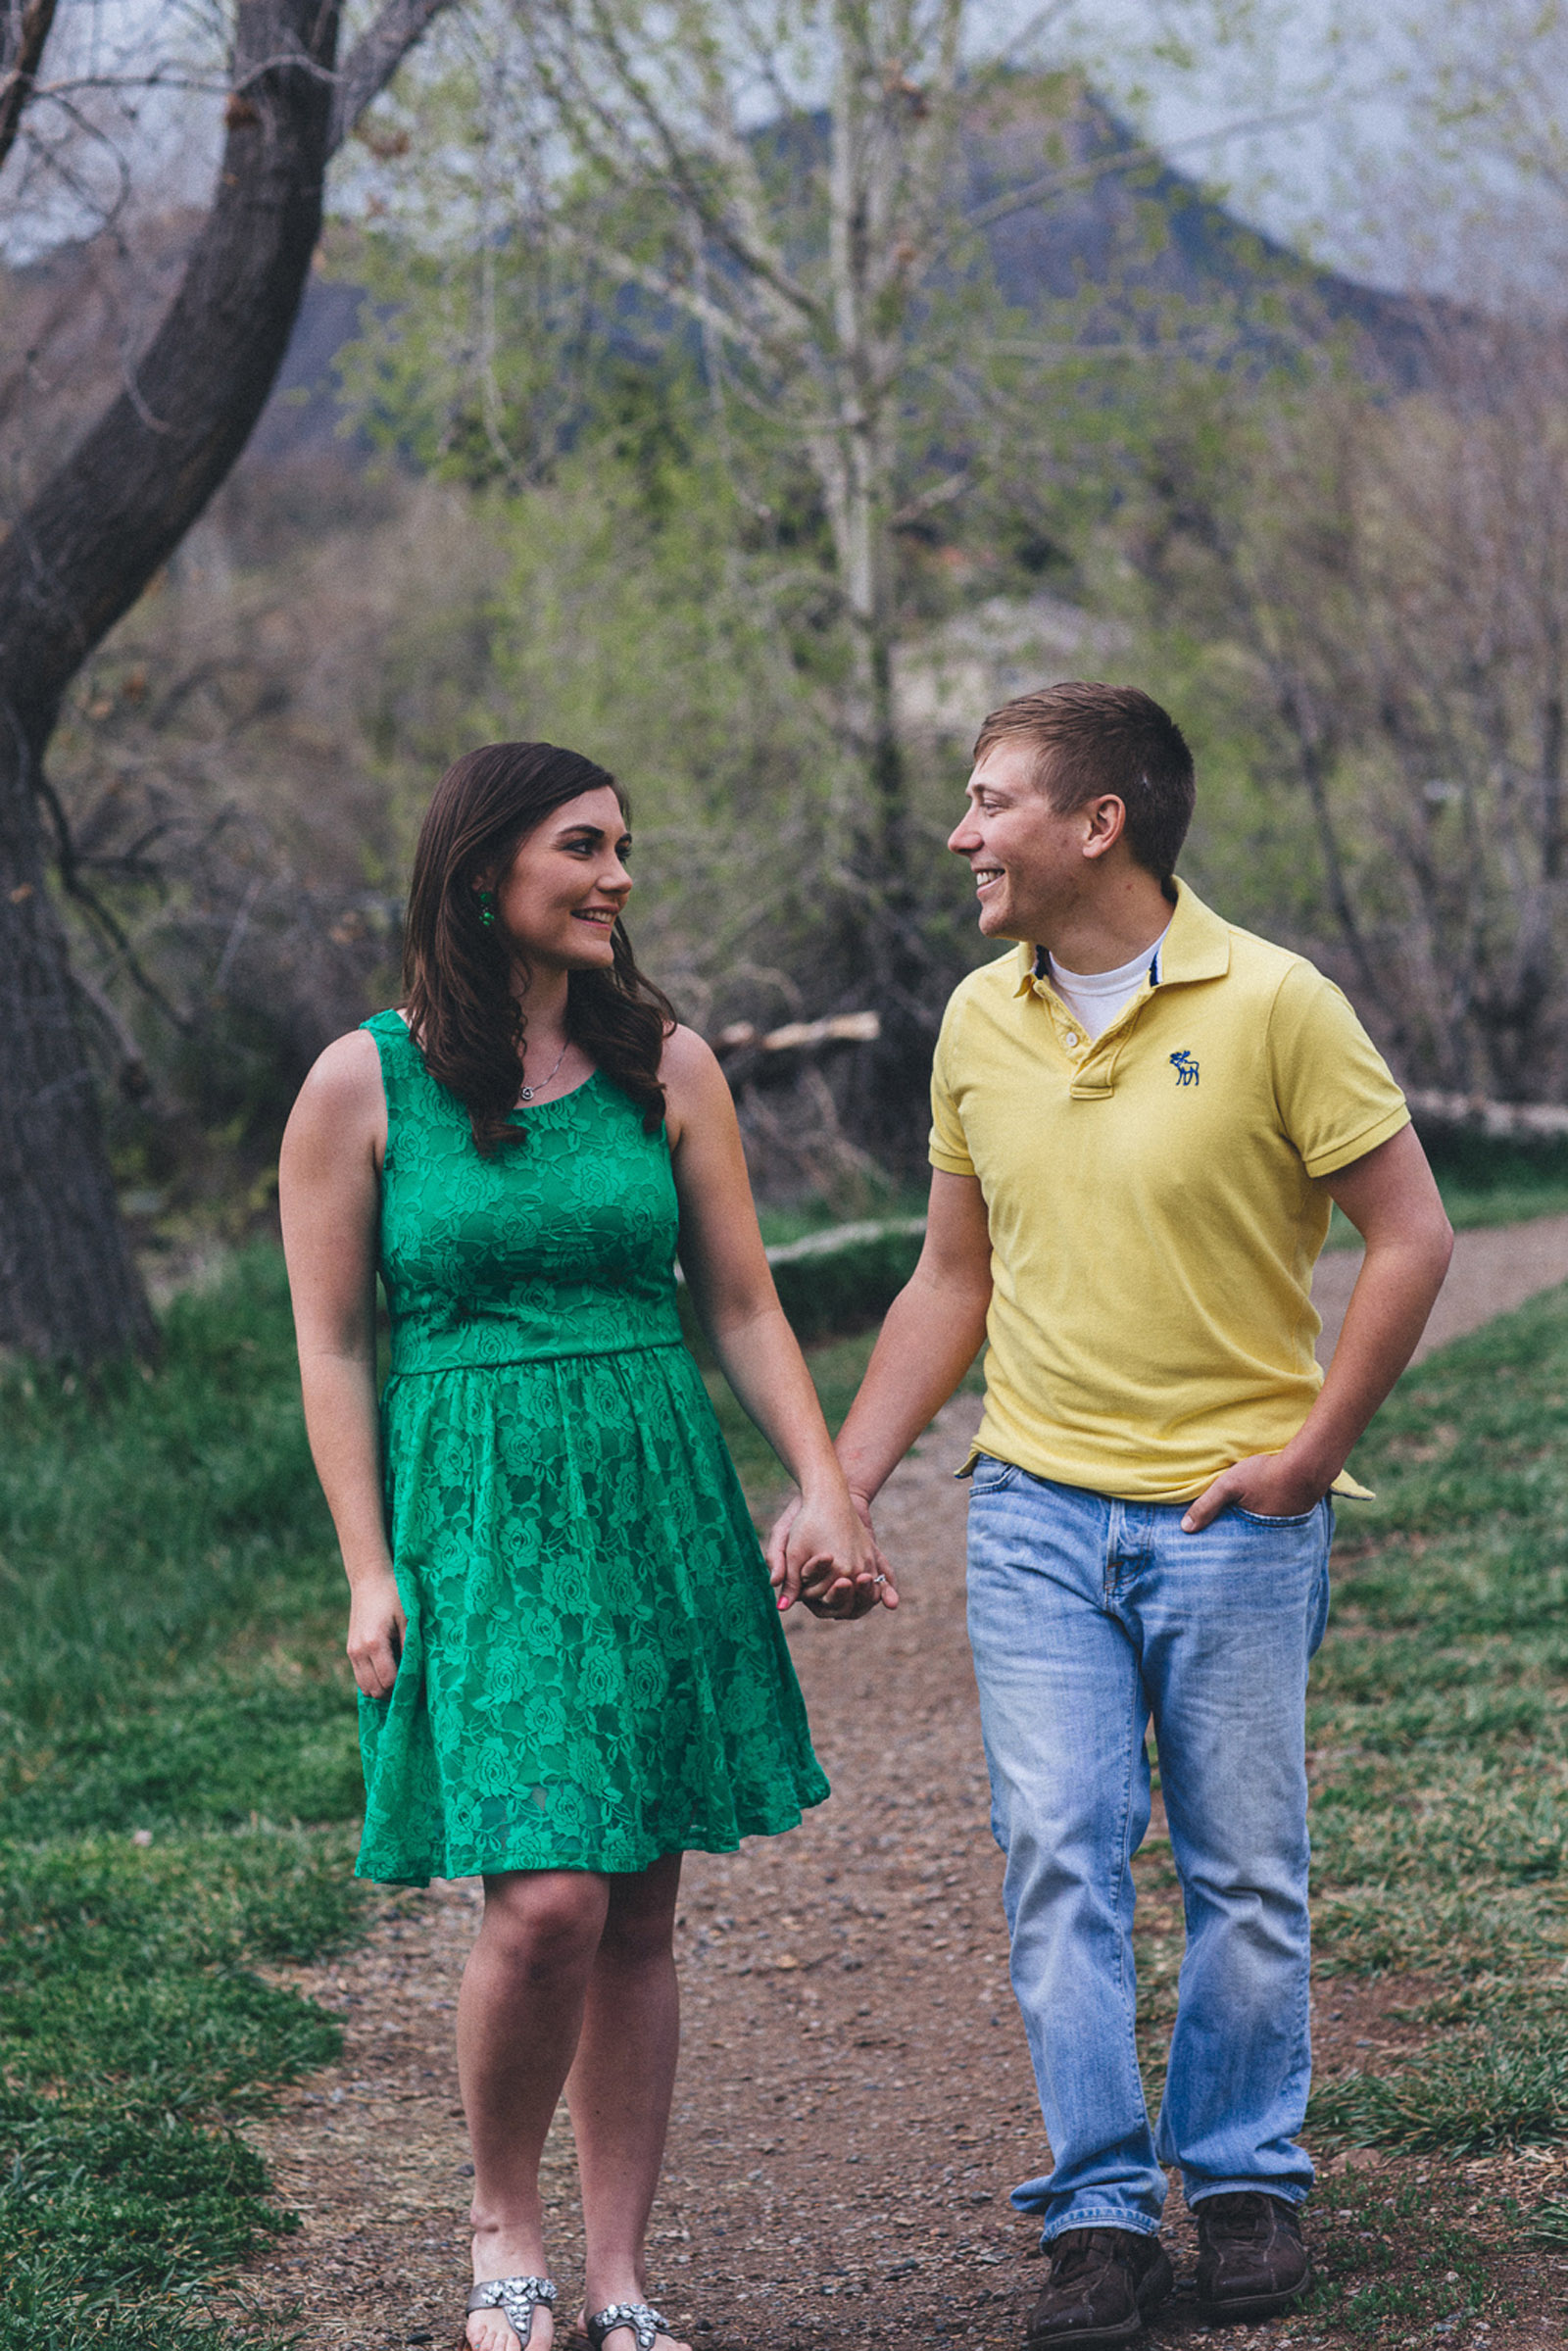 015-engagement-trees-fun-laughing-durango-colorado-farmington